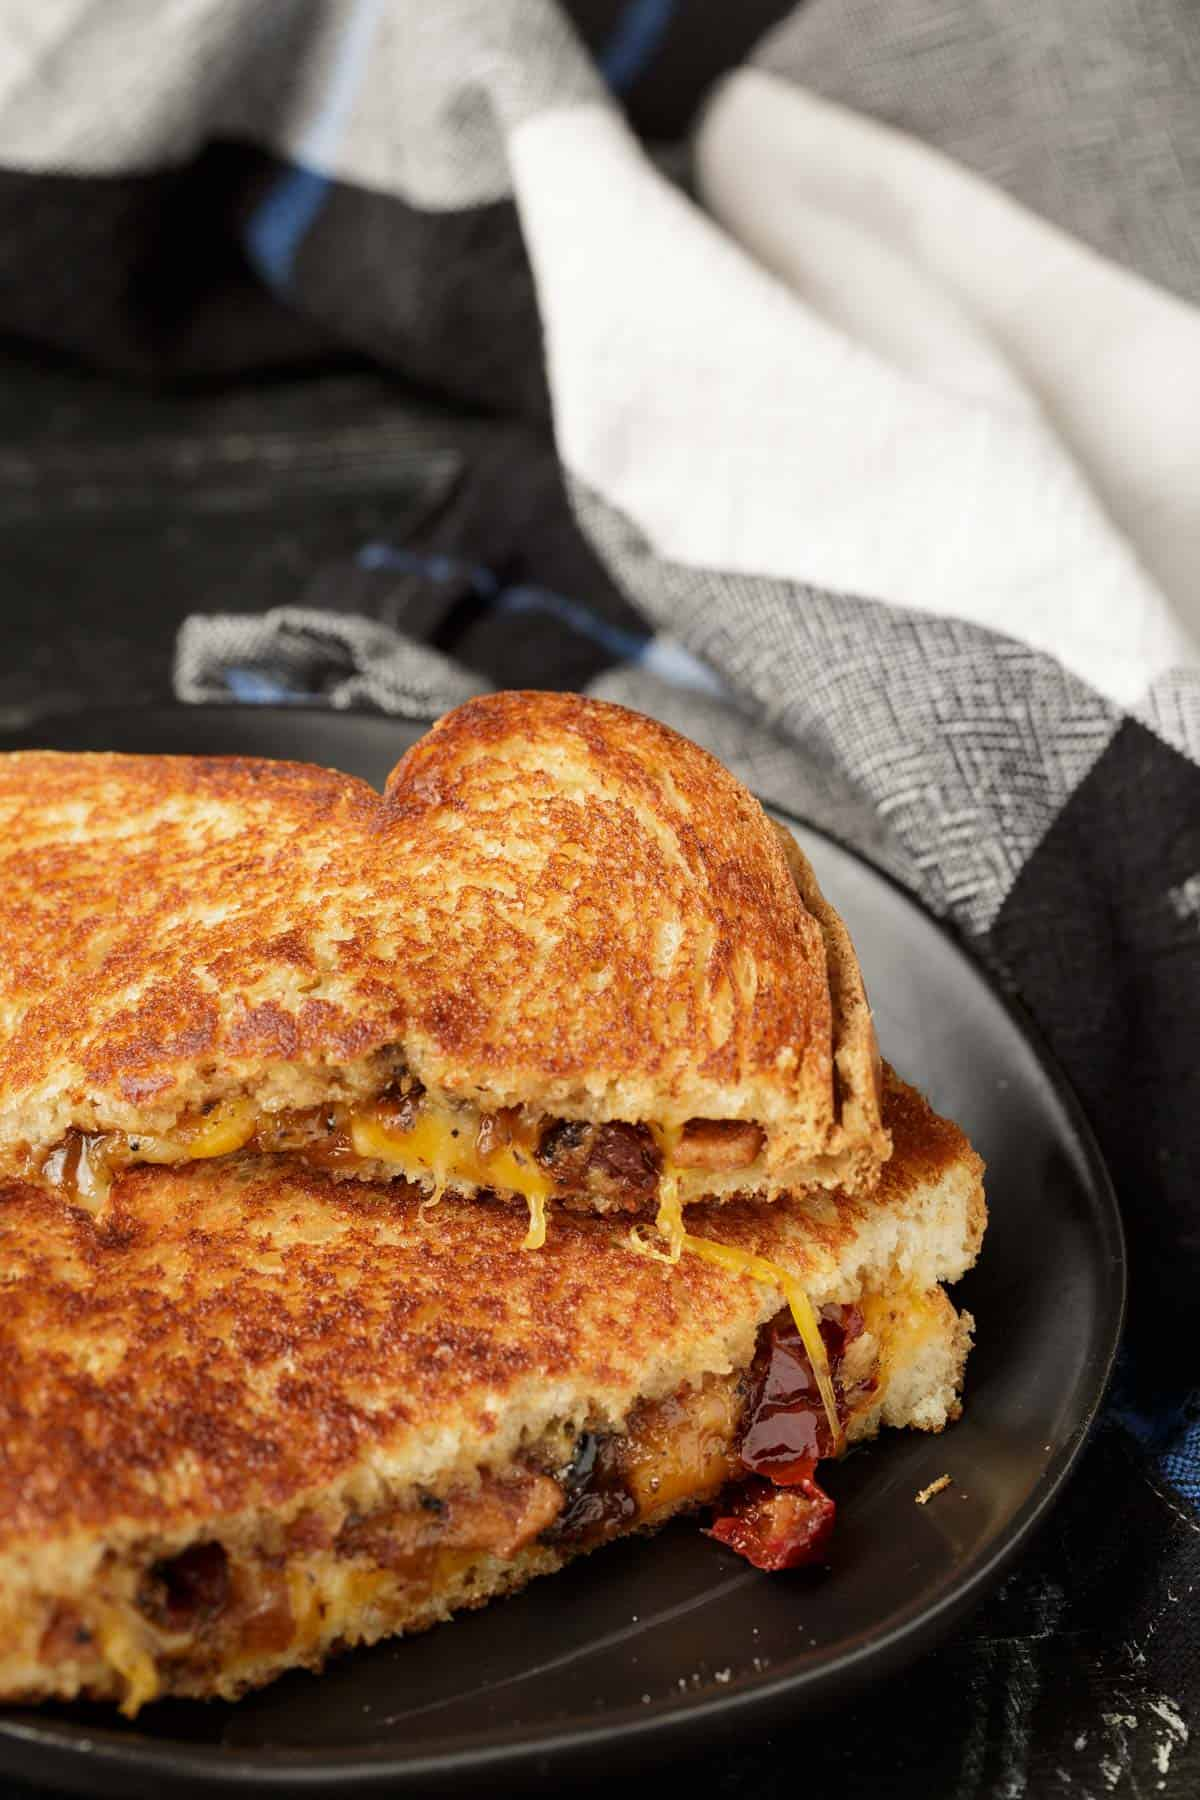 A grilled Cheese with bacon peach jam.